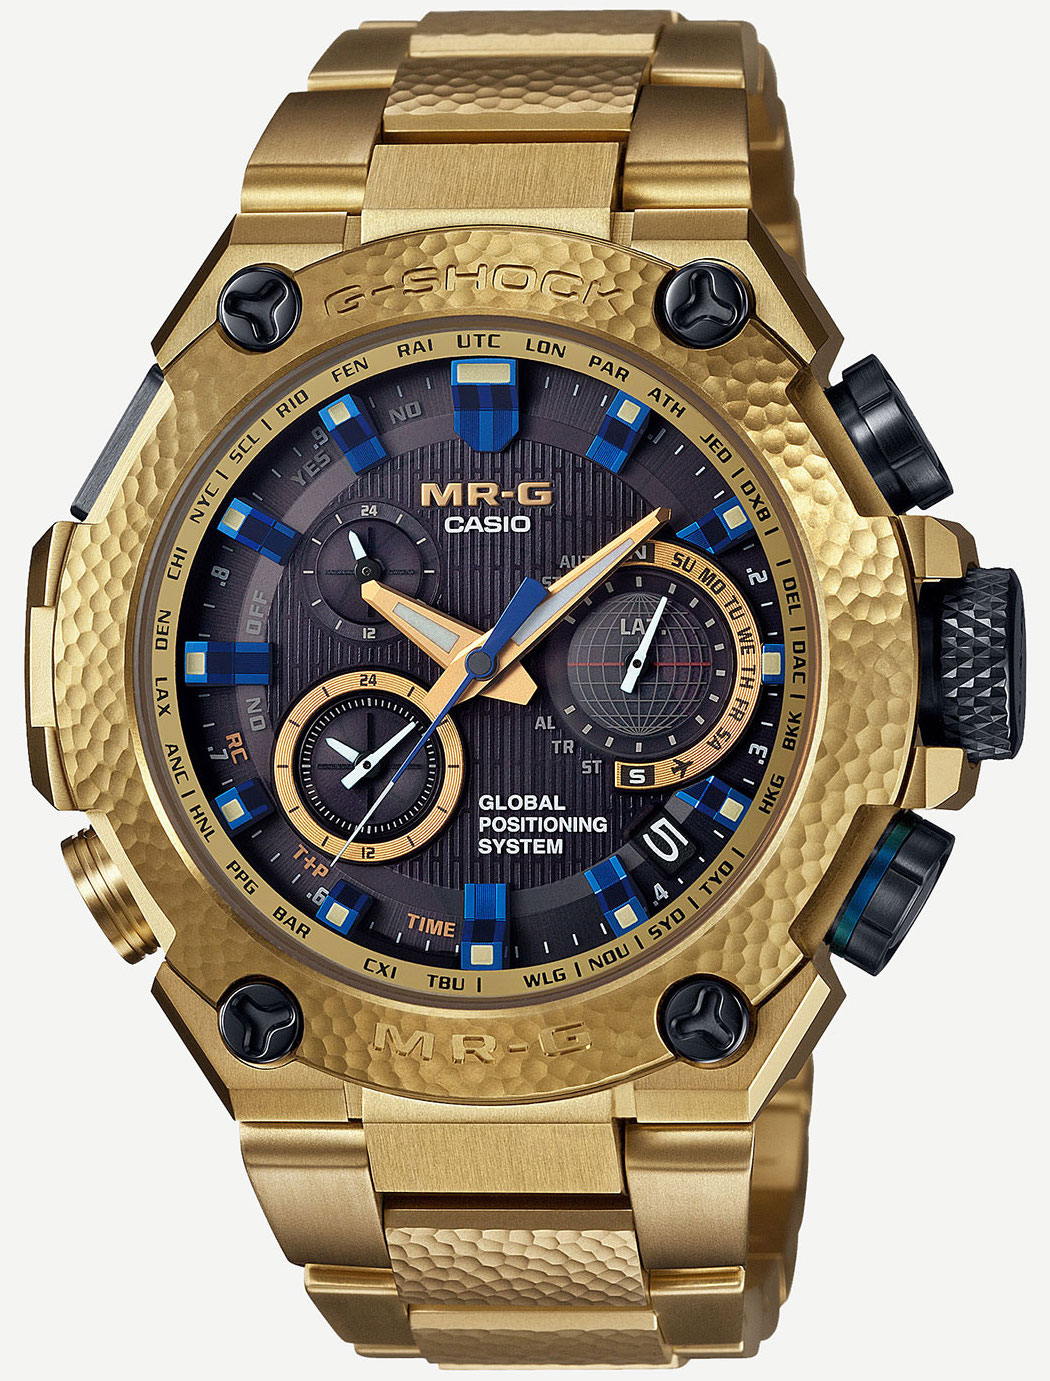 The Casio G-Shock MRGG1000HG-9A Limited Edition MR-G Hybrid